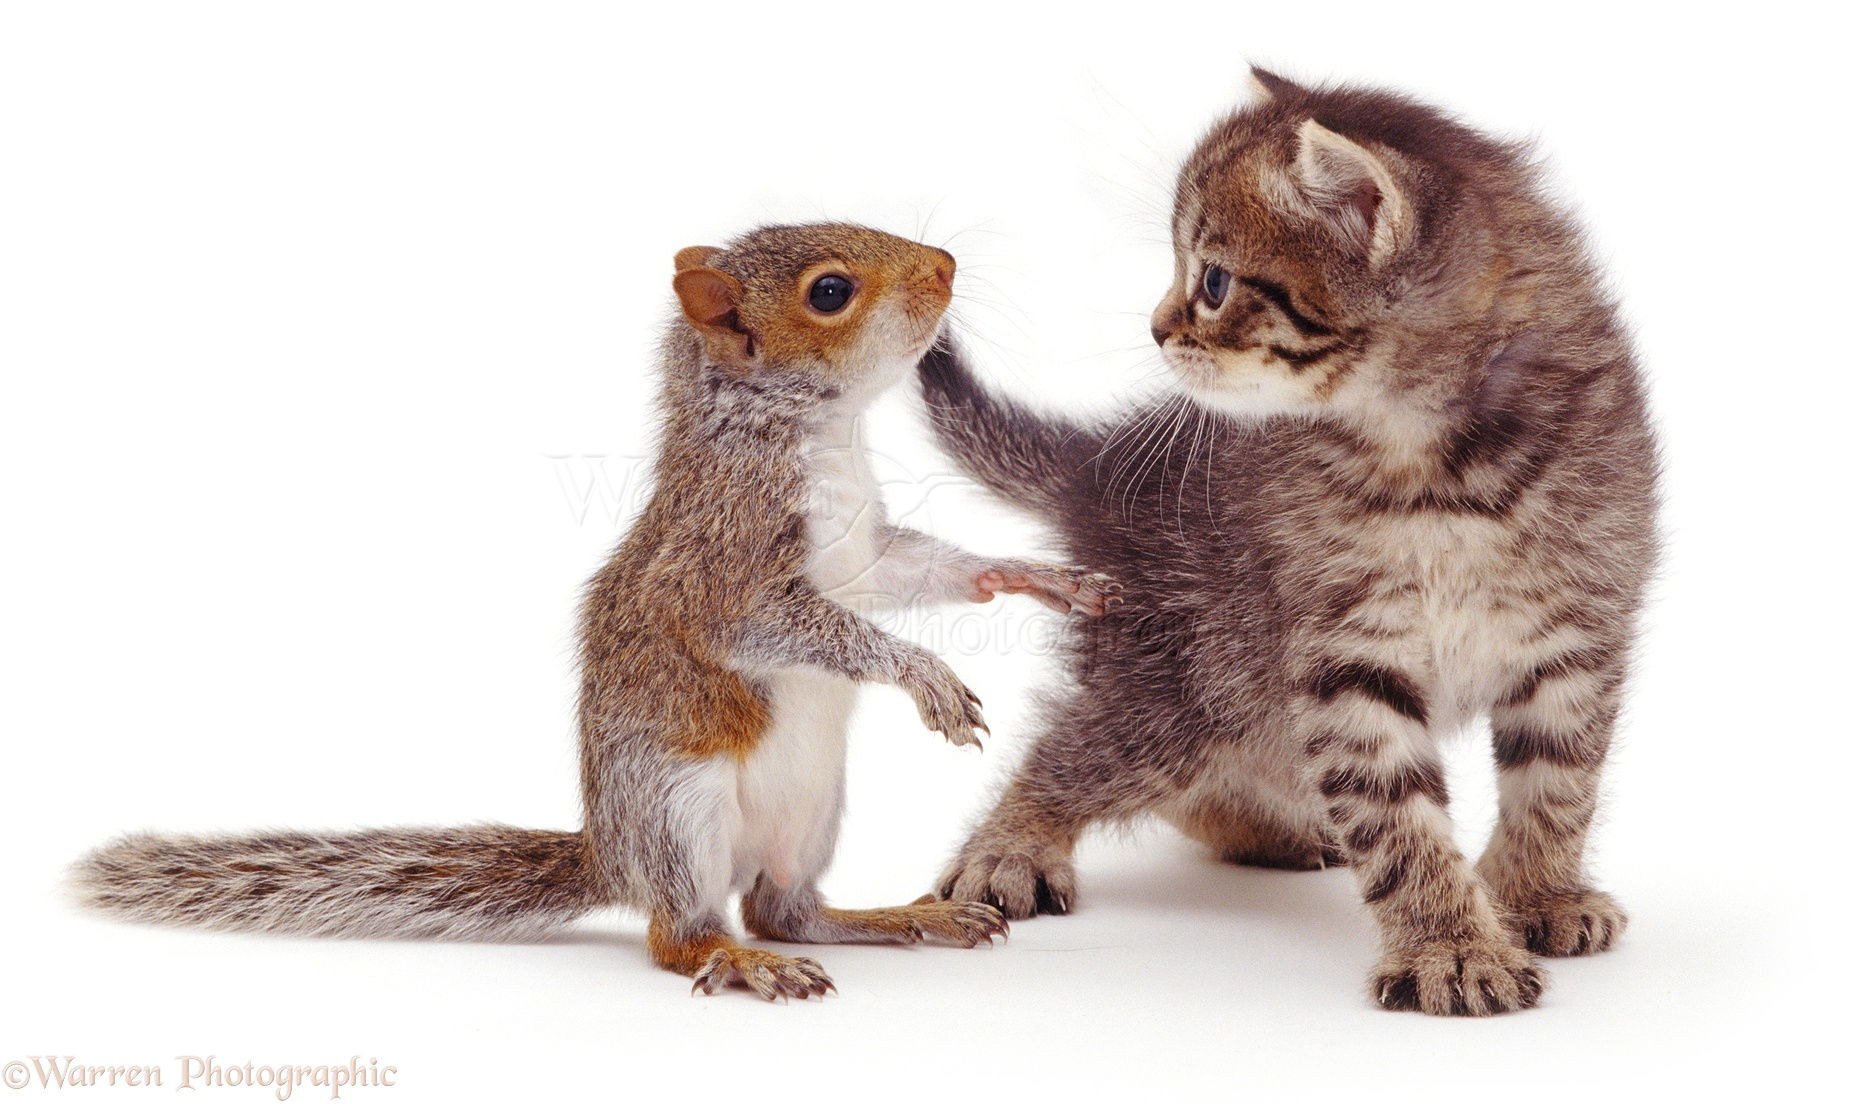 Matching Images >> Cute Animal Picture of Baby Grey Squirrel and Kitten, WP08139.